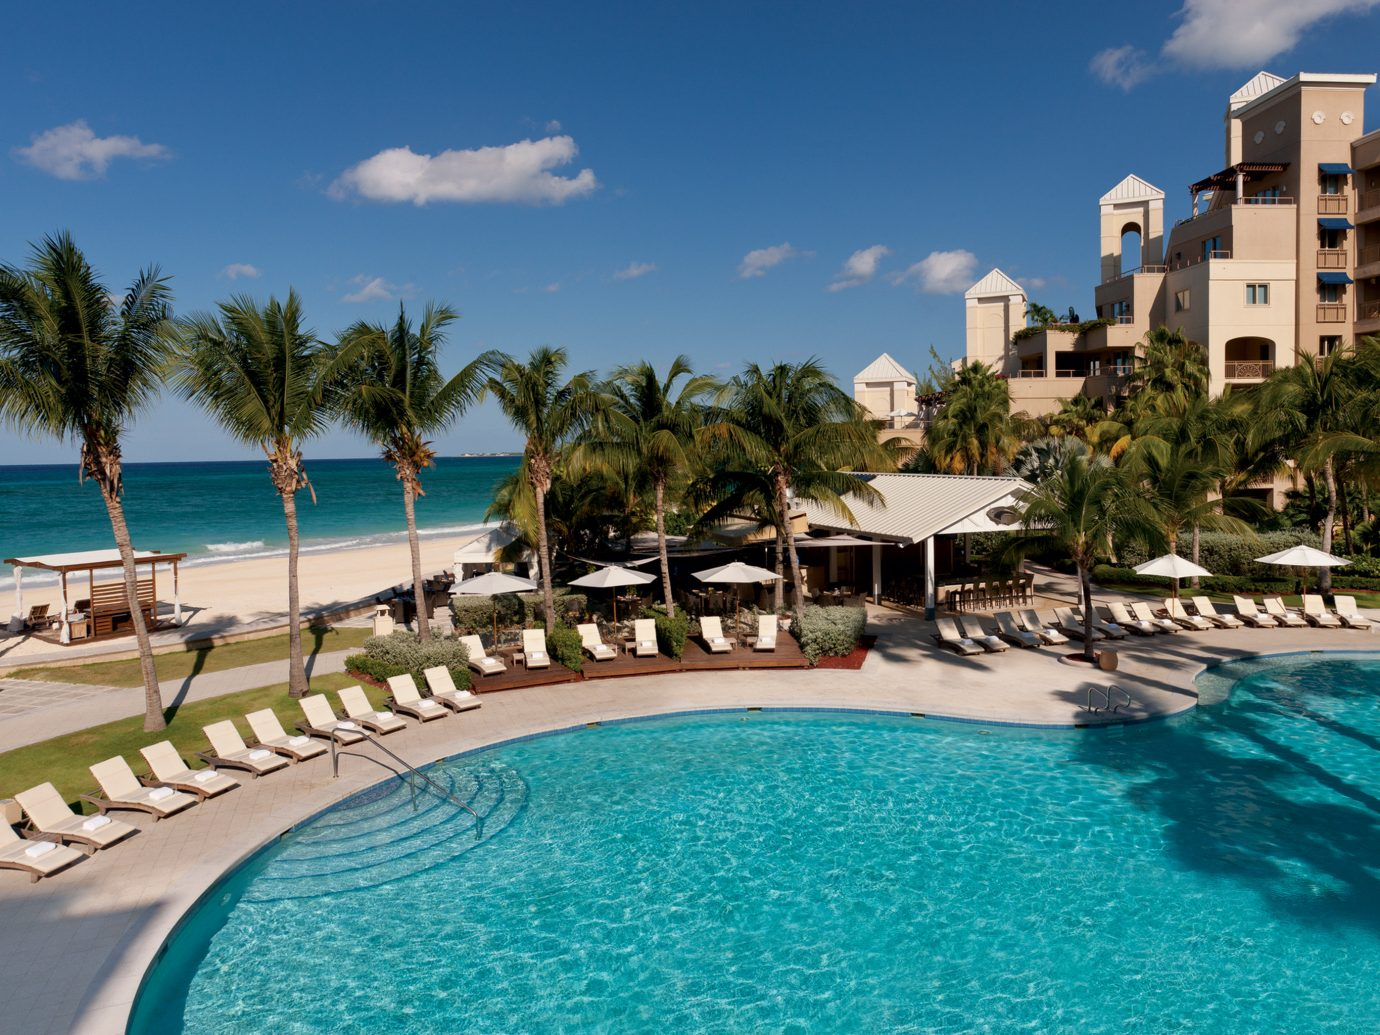 Beachfront Exterior Hotels Luxury Pool Trip Ideas water Resort sky outdoor umbrella swimming swimming pool Beach property leisure vacation estate marina resort town condominium Sea caribbean palm bay lawn Lagoon blue lined reef